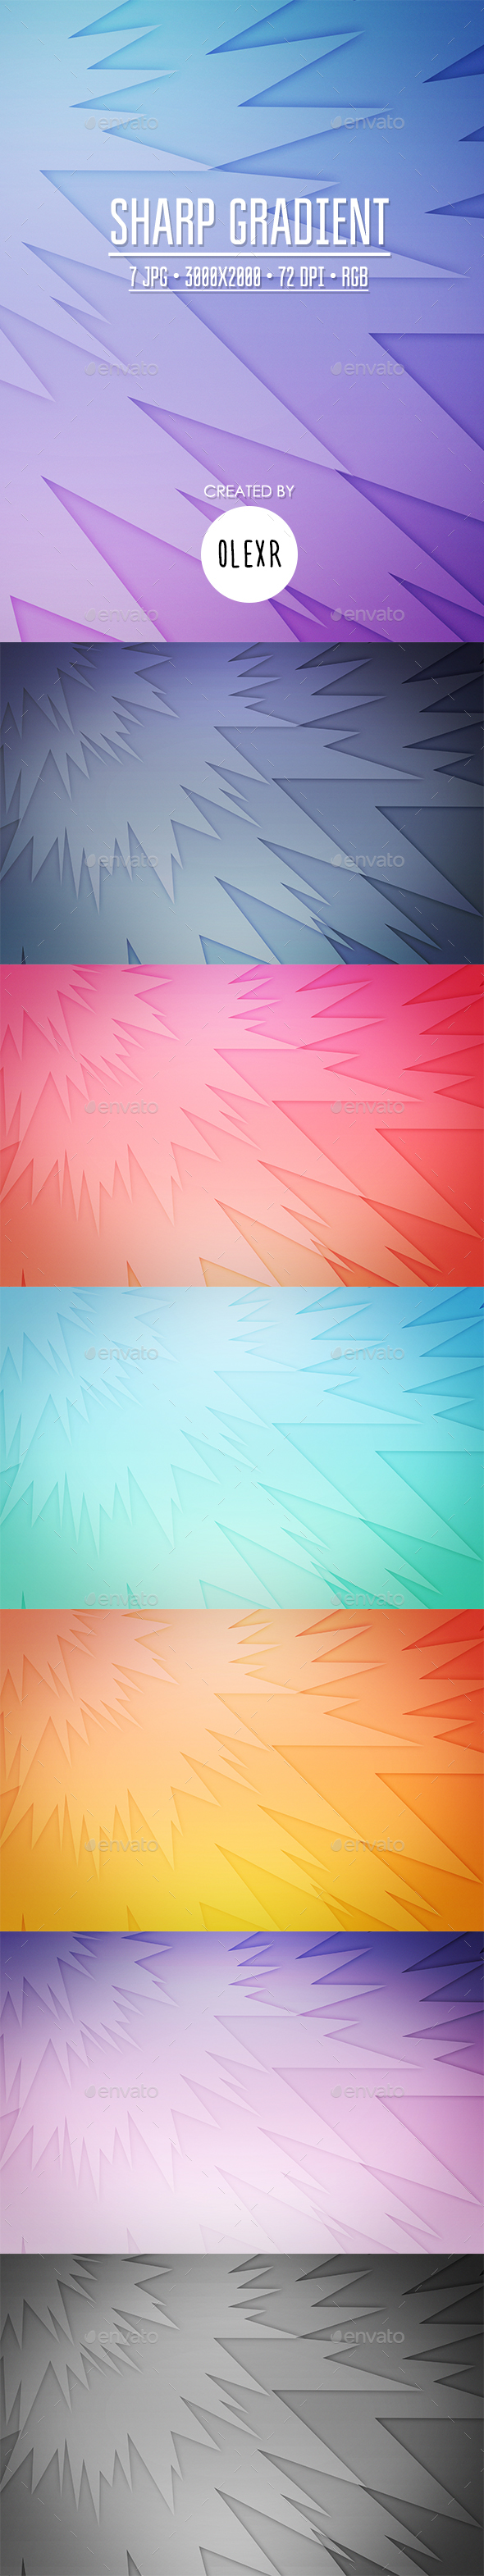 Sharp Gradient Backgrounds - Abstract Backgrounds